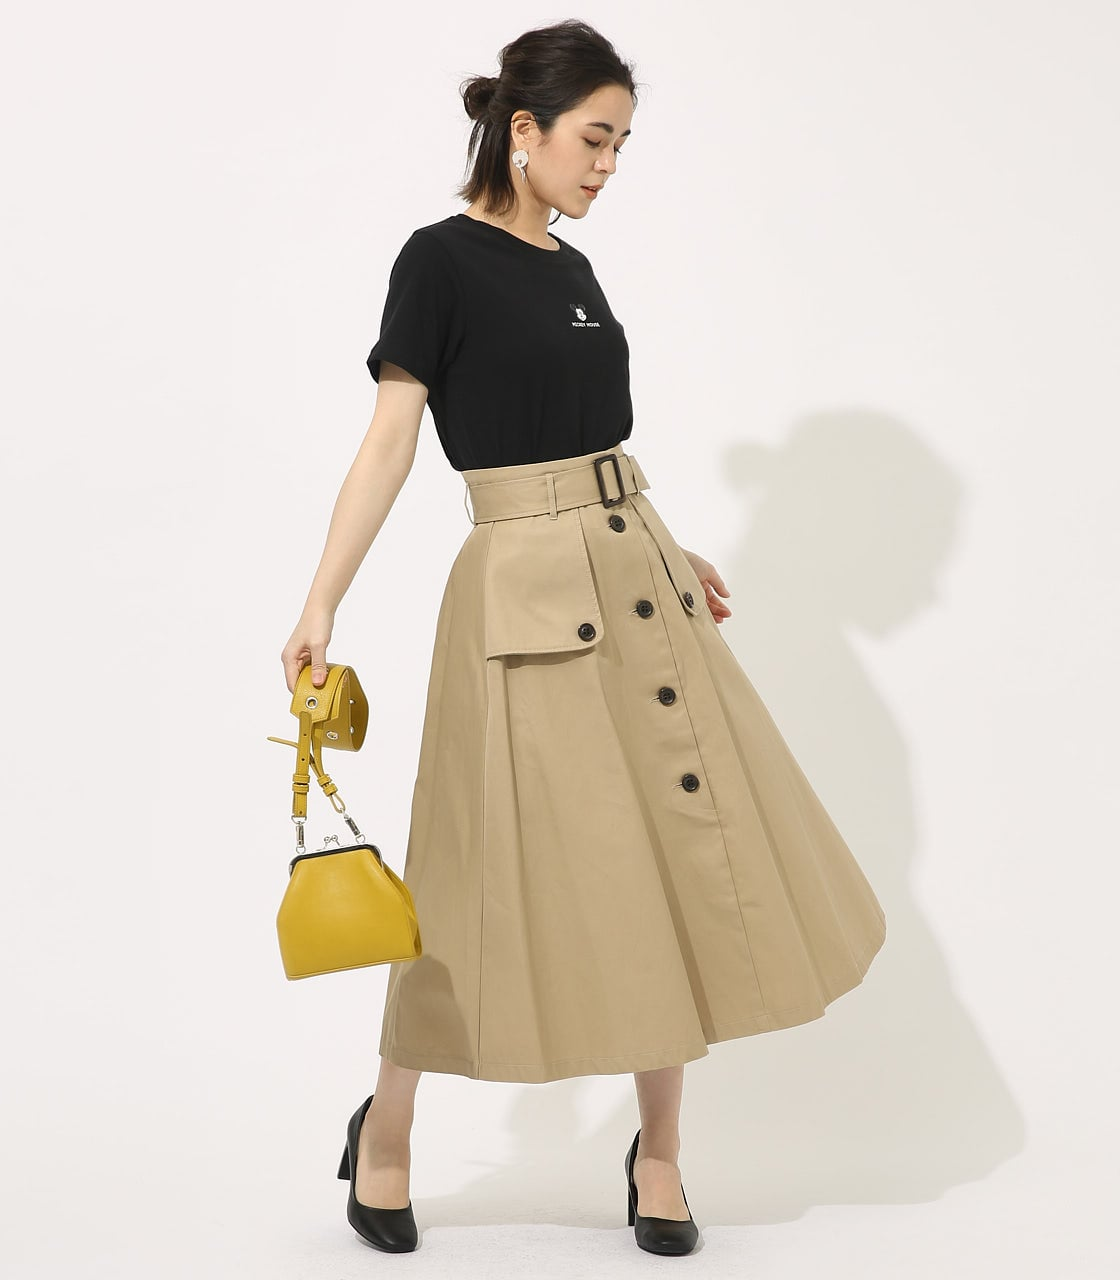 【AZUL BY MOUSSY】TRENCH FLARE SKIRT 詳細画像 BEG 3